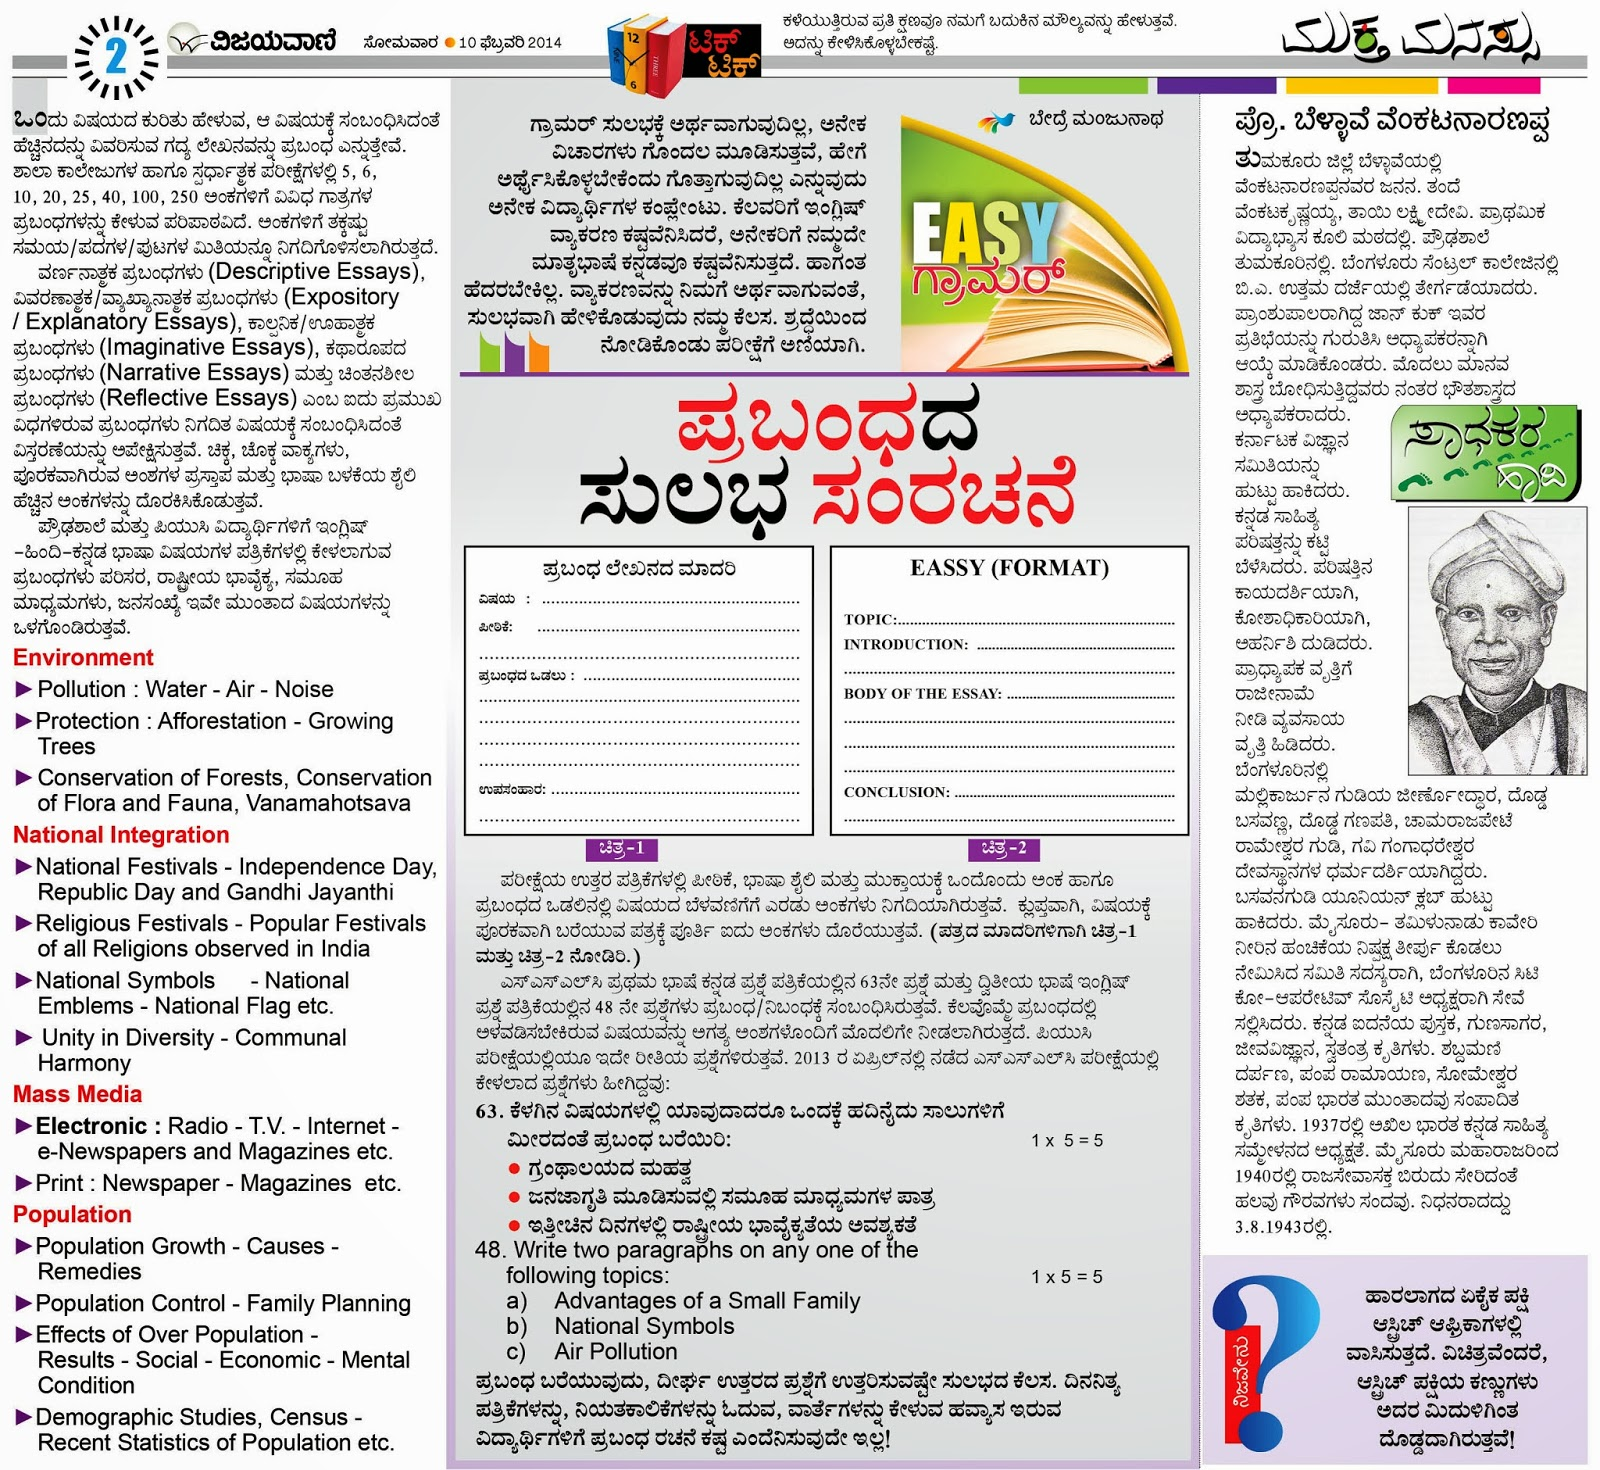 essay writing for sslc and puc essay writing for sslc and puc students vijayavani student mitra 10 feb 2014